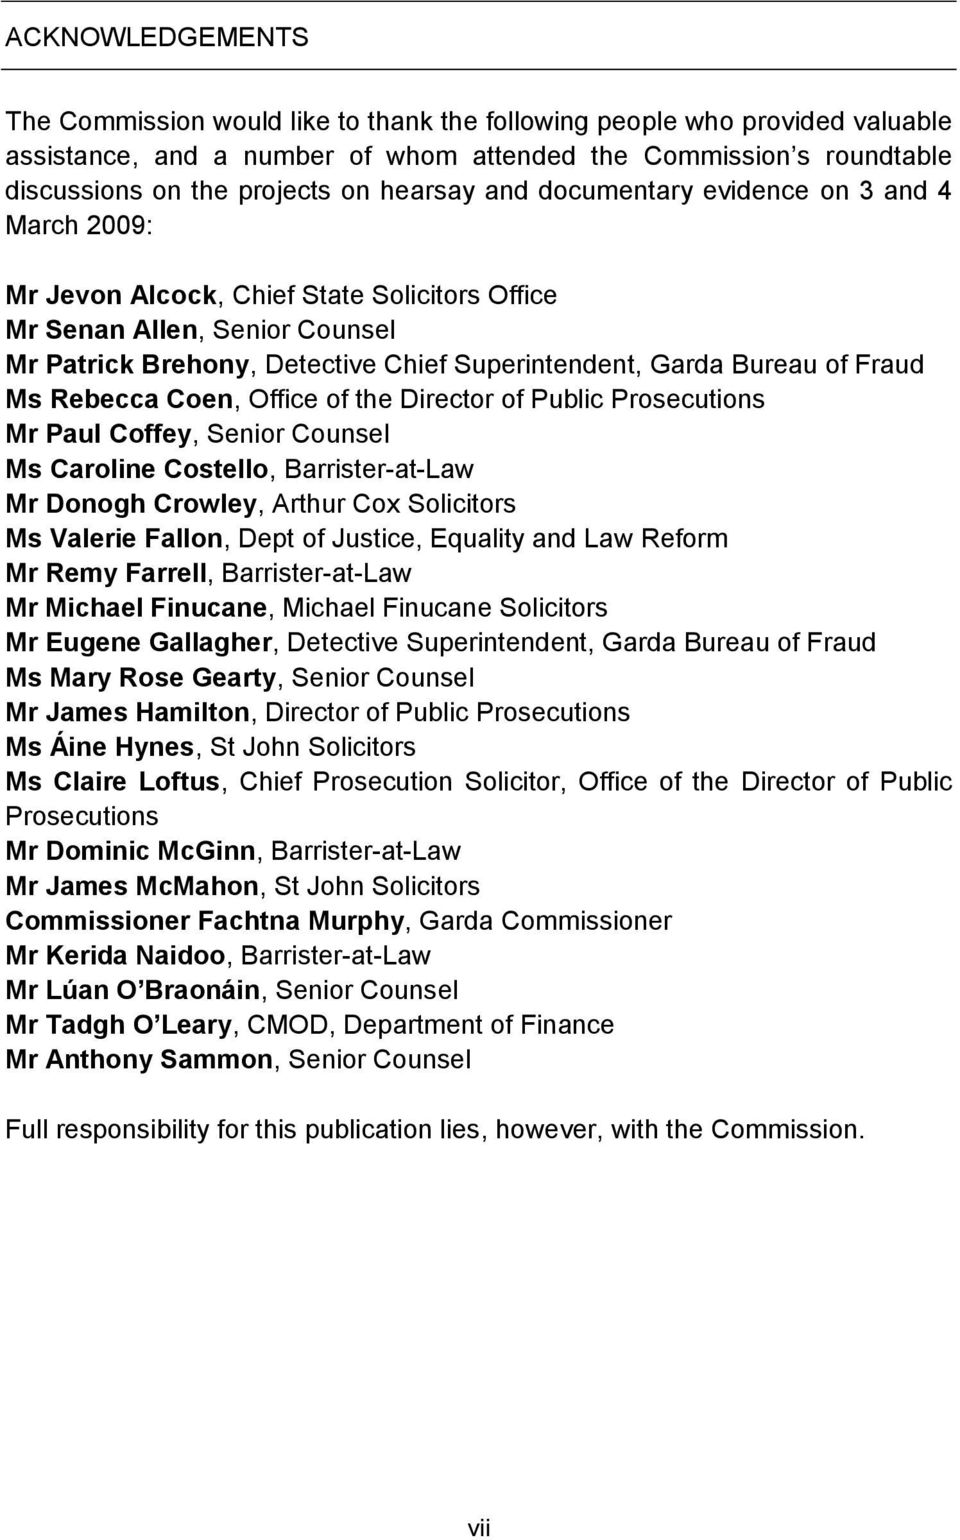 of Fraud Ms Rebecca Coen, Office of the Director of Public Prosecutions Mr Paul Coffey, Senior Counsel Ms Caroline Costello, Barrister-at-Law Mr Donogh Crowley, Arthur Cox Solicitors Ms Valerie